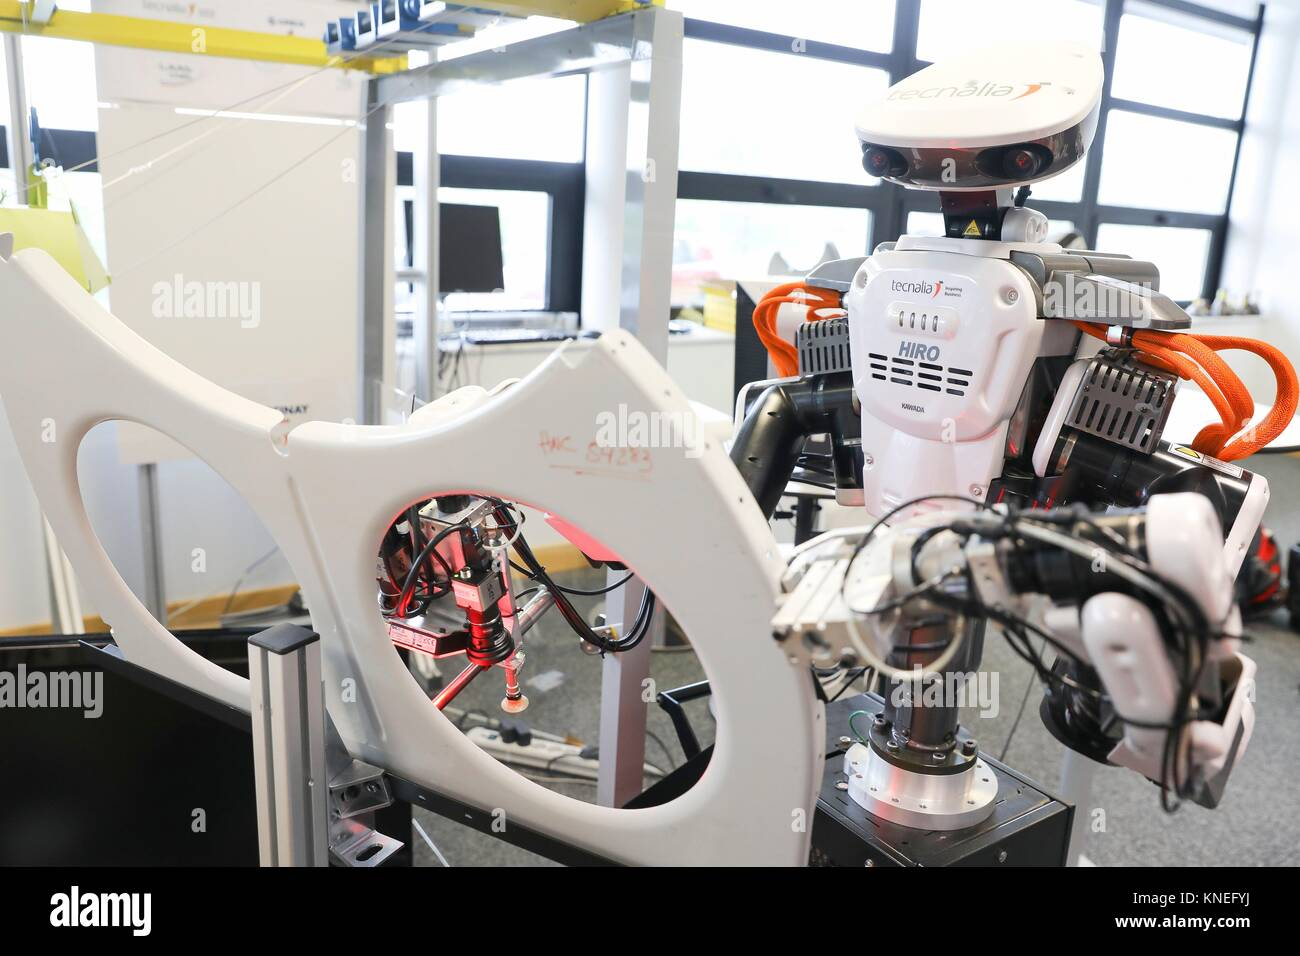 Robot with two arms for flexible robotics. Humanoid robot for automotive assembly tasks in collaboration with people, - Stock Image